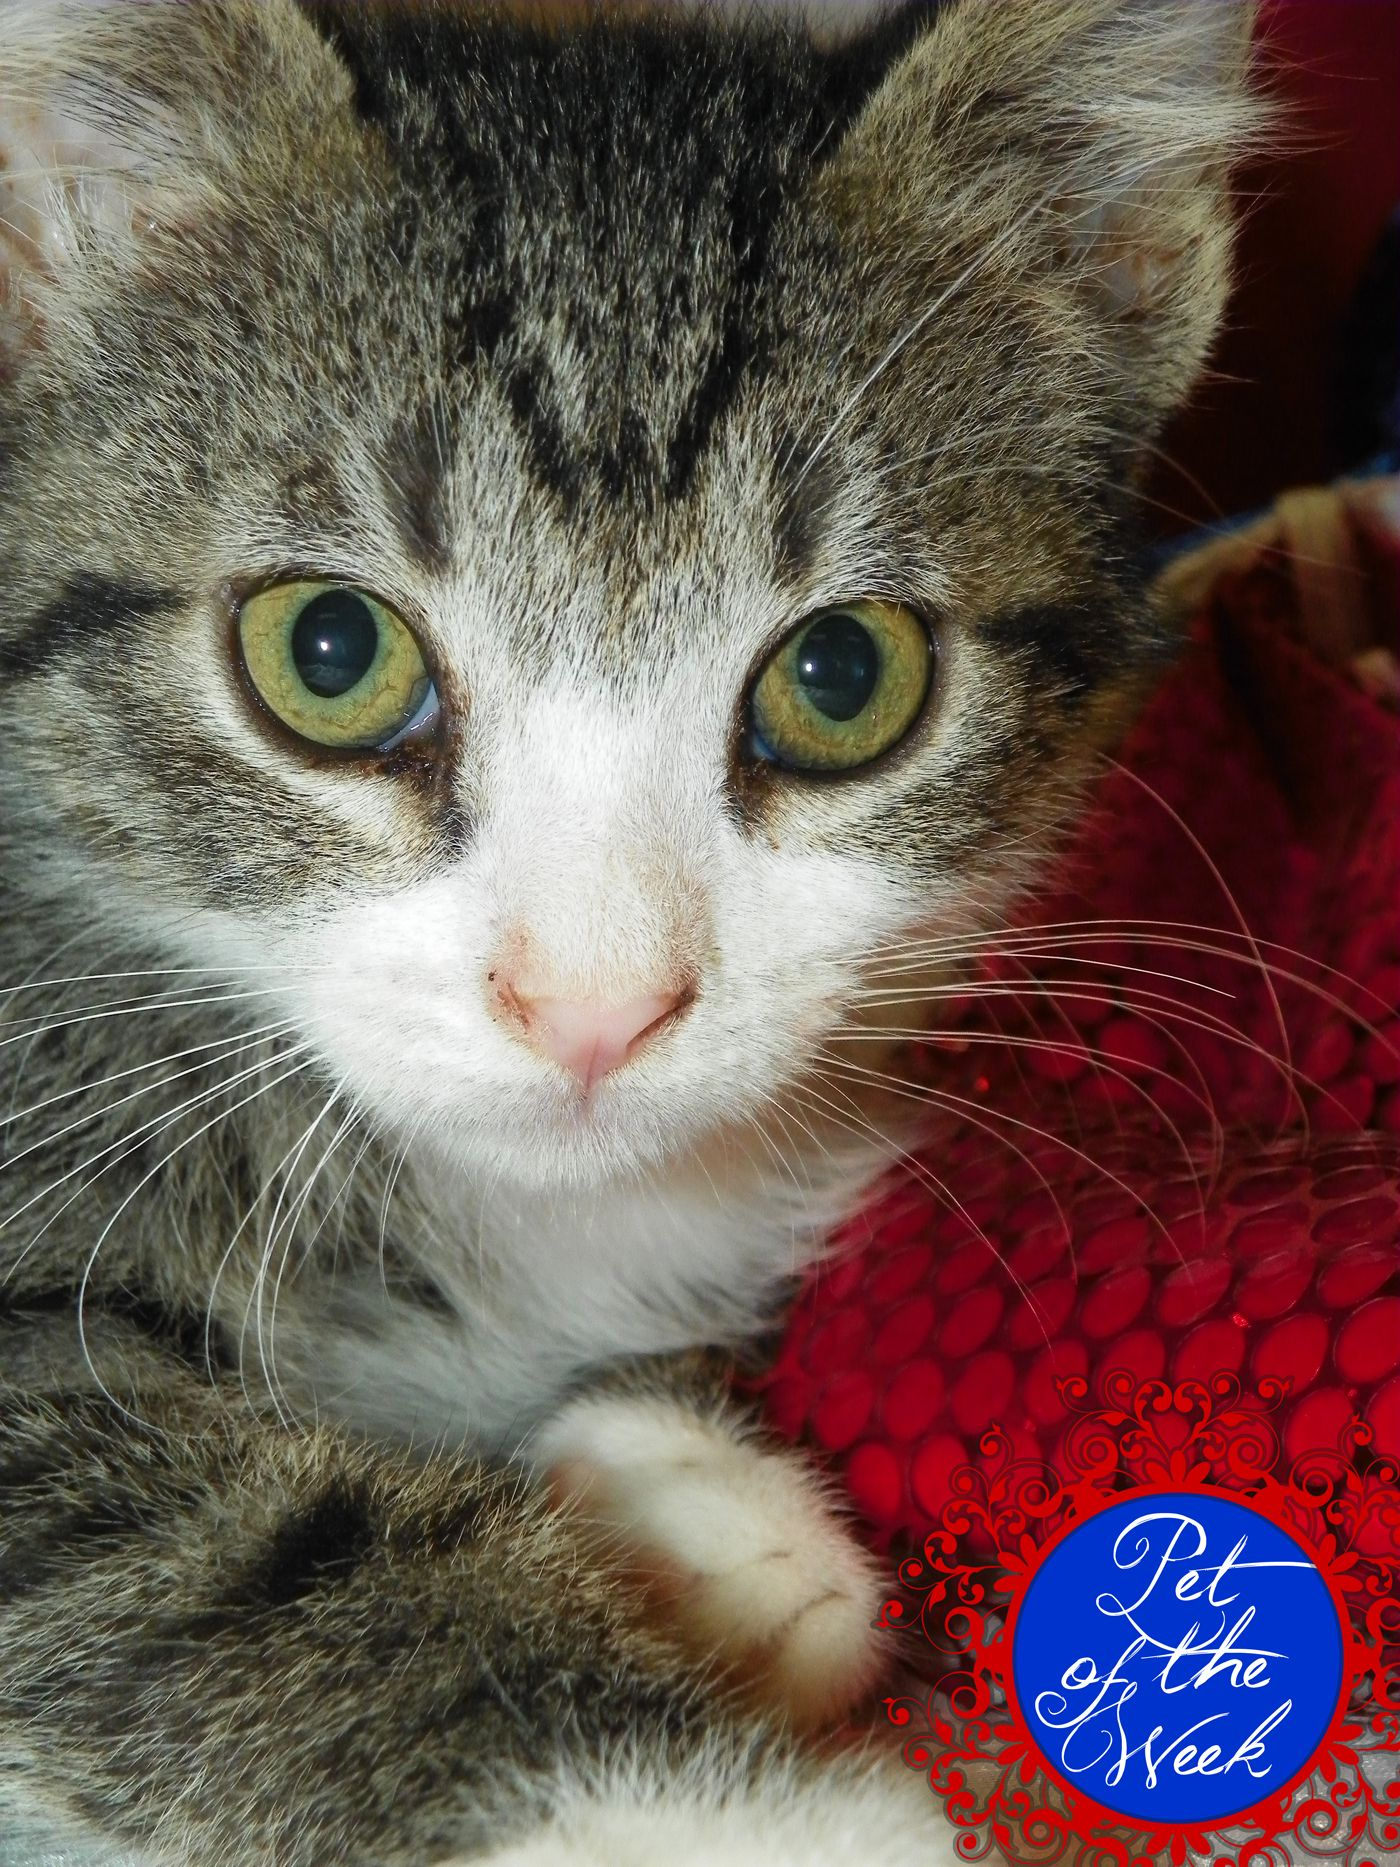 Quick is one of the many cute kittens available at the La